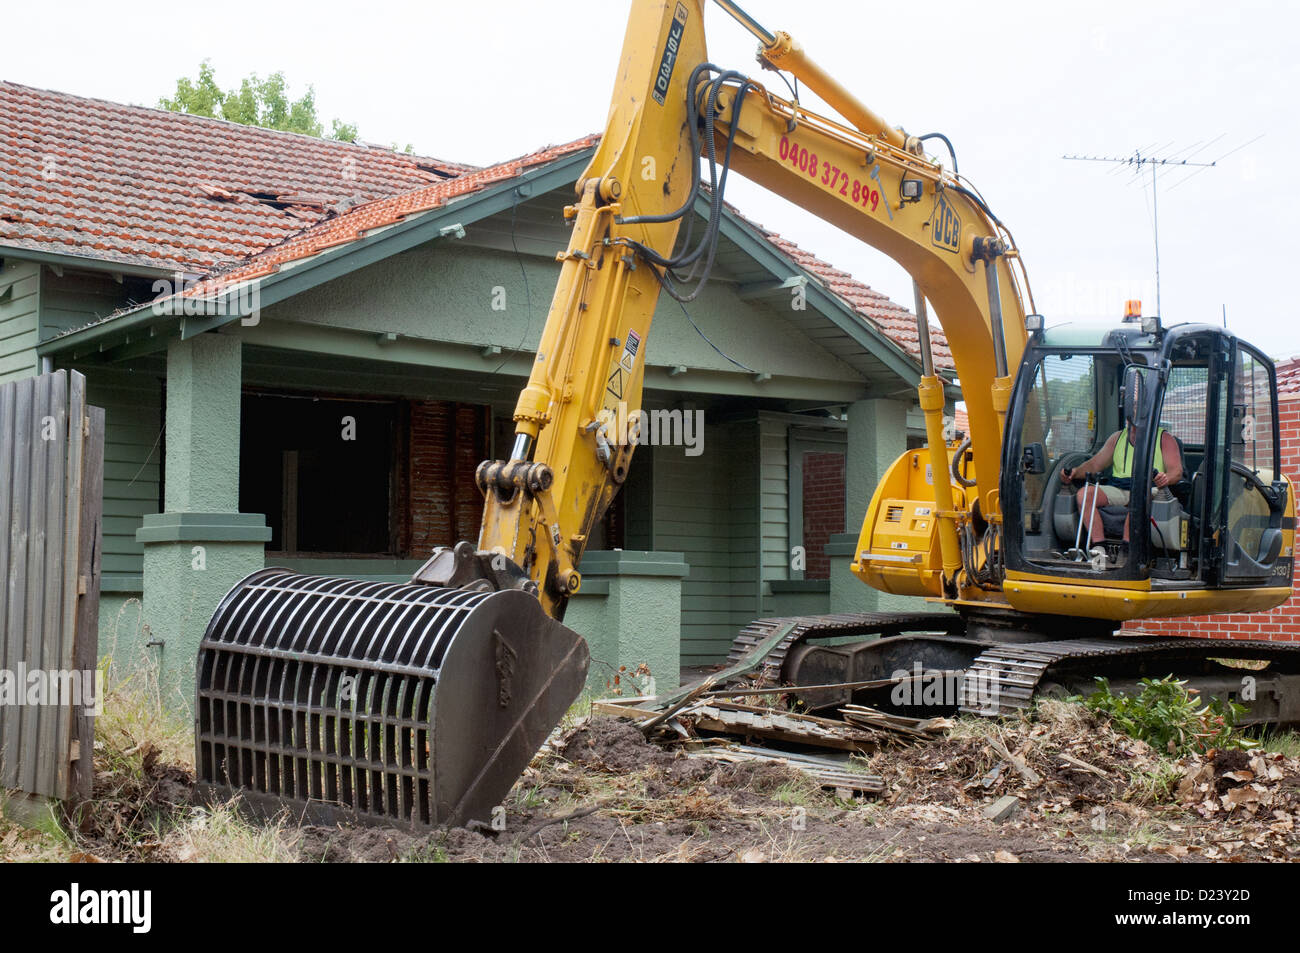 Demolition Contractor Begins Work On A 1920s Californian Bungalow Timber Home In Suburban Melbourne Australia